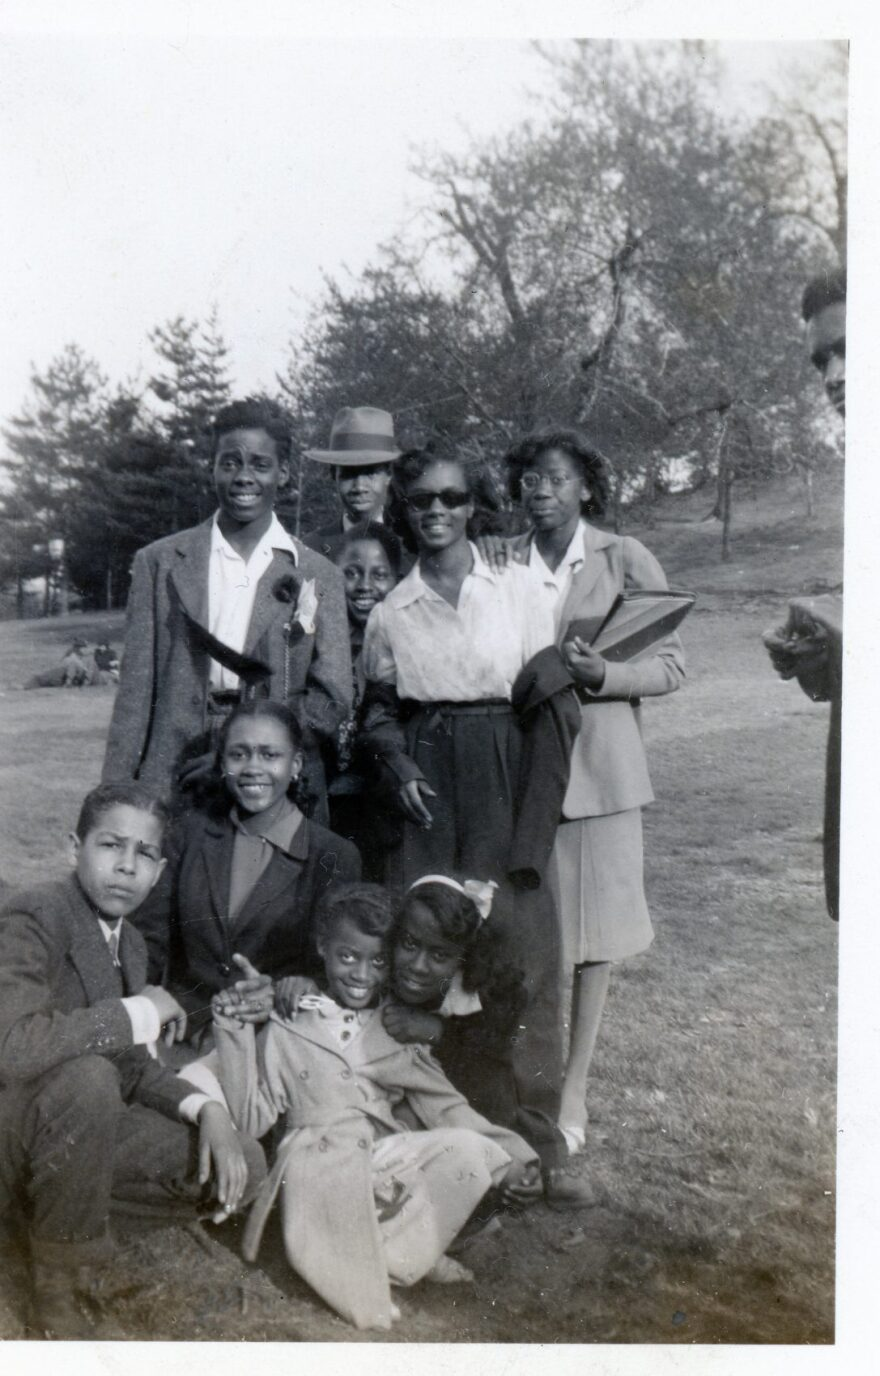 Laura Fitzpatrick's photograph of Faye Howell with a group of her friends in the park in 1942. (Courtesy Daniel S. Evans)